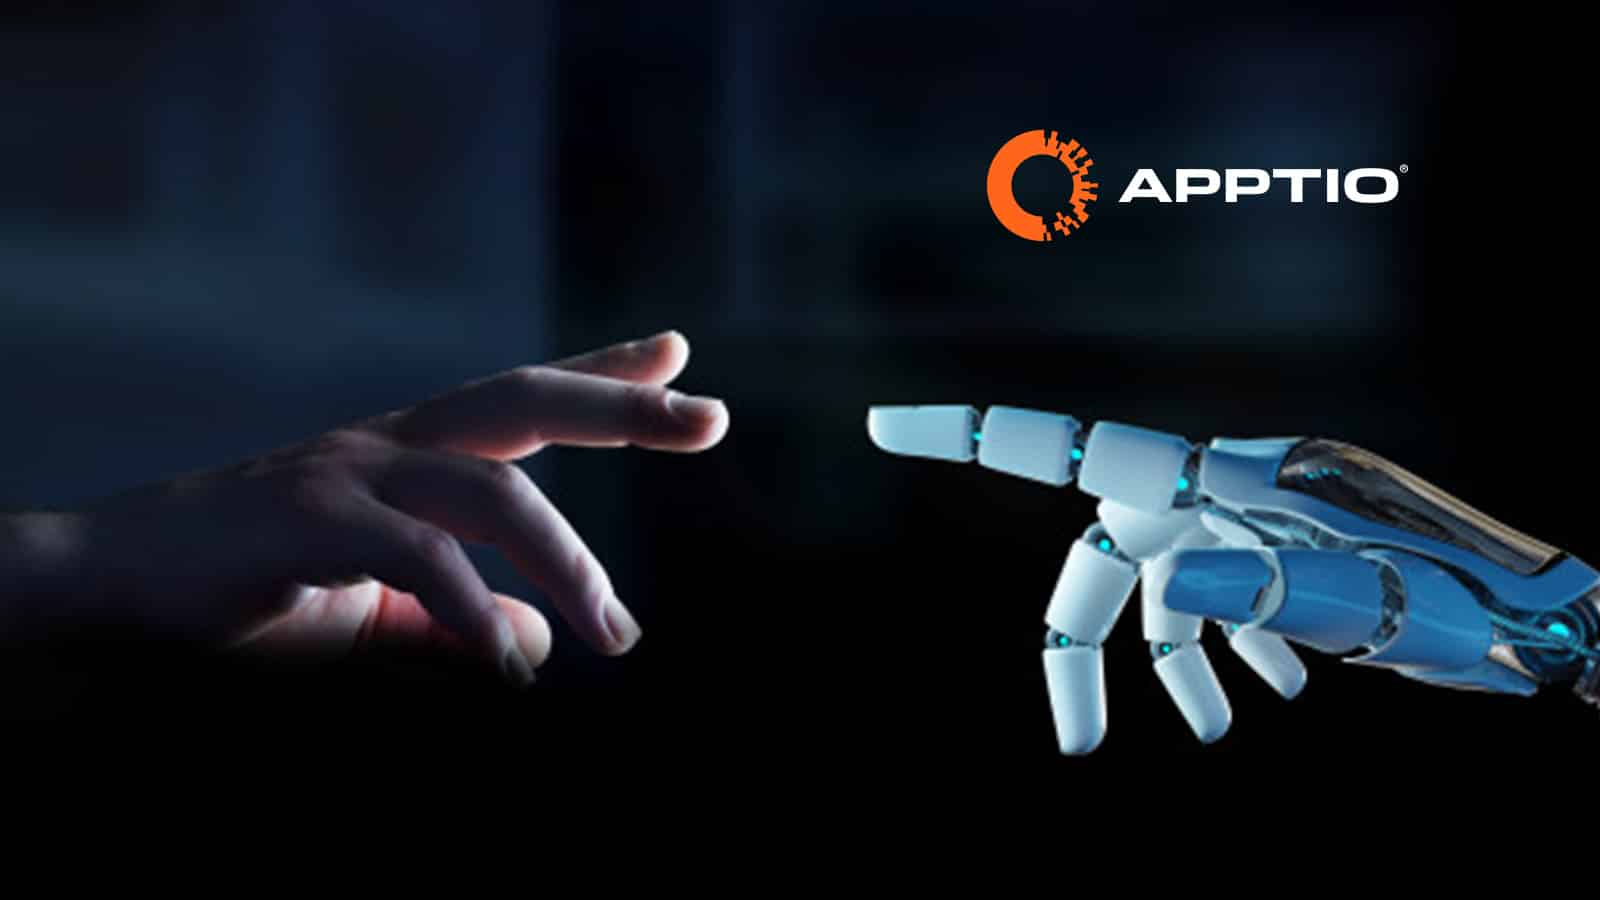 apptio financial management technology business